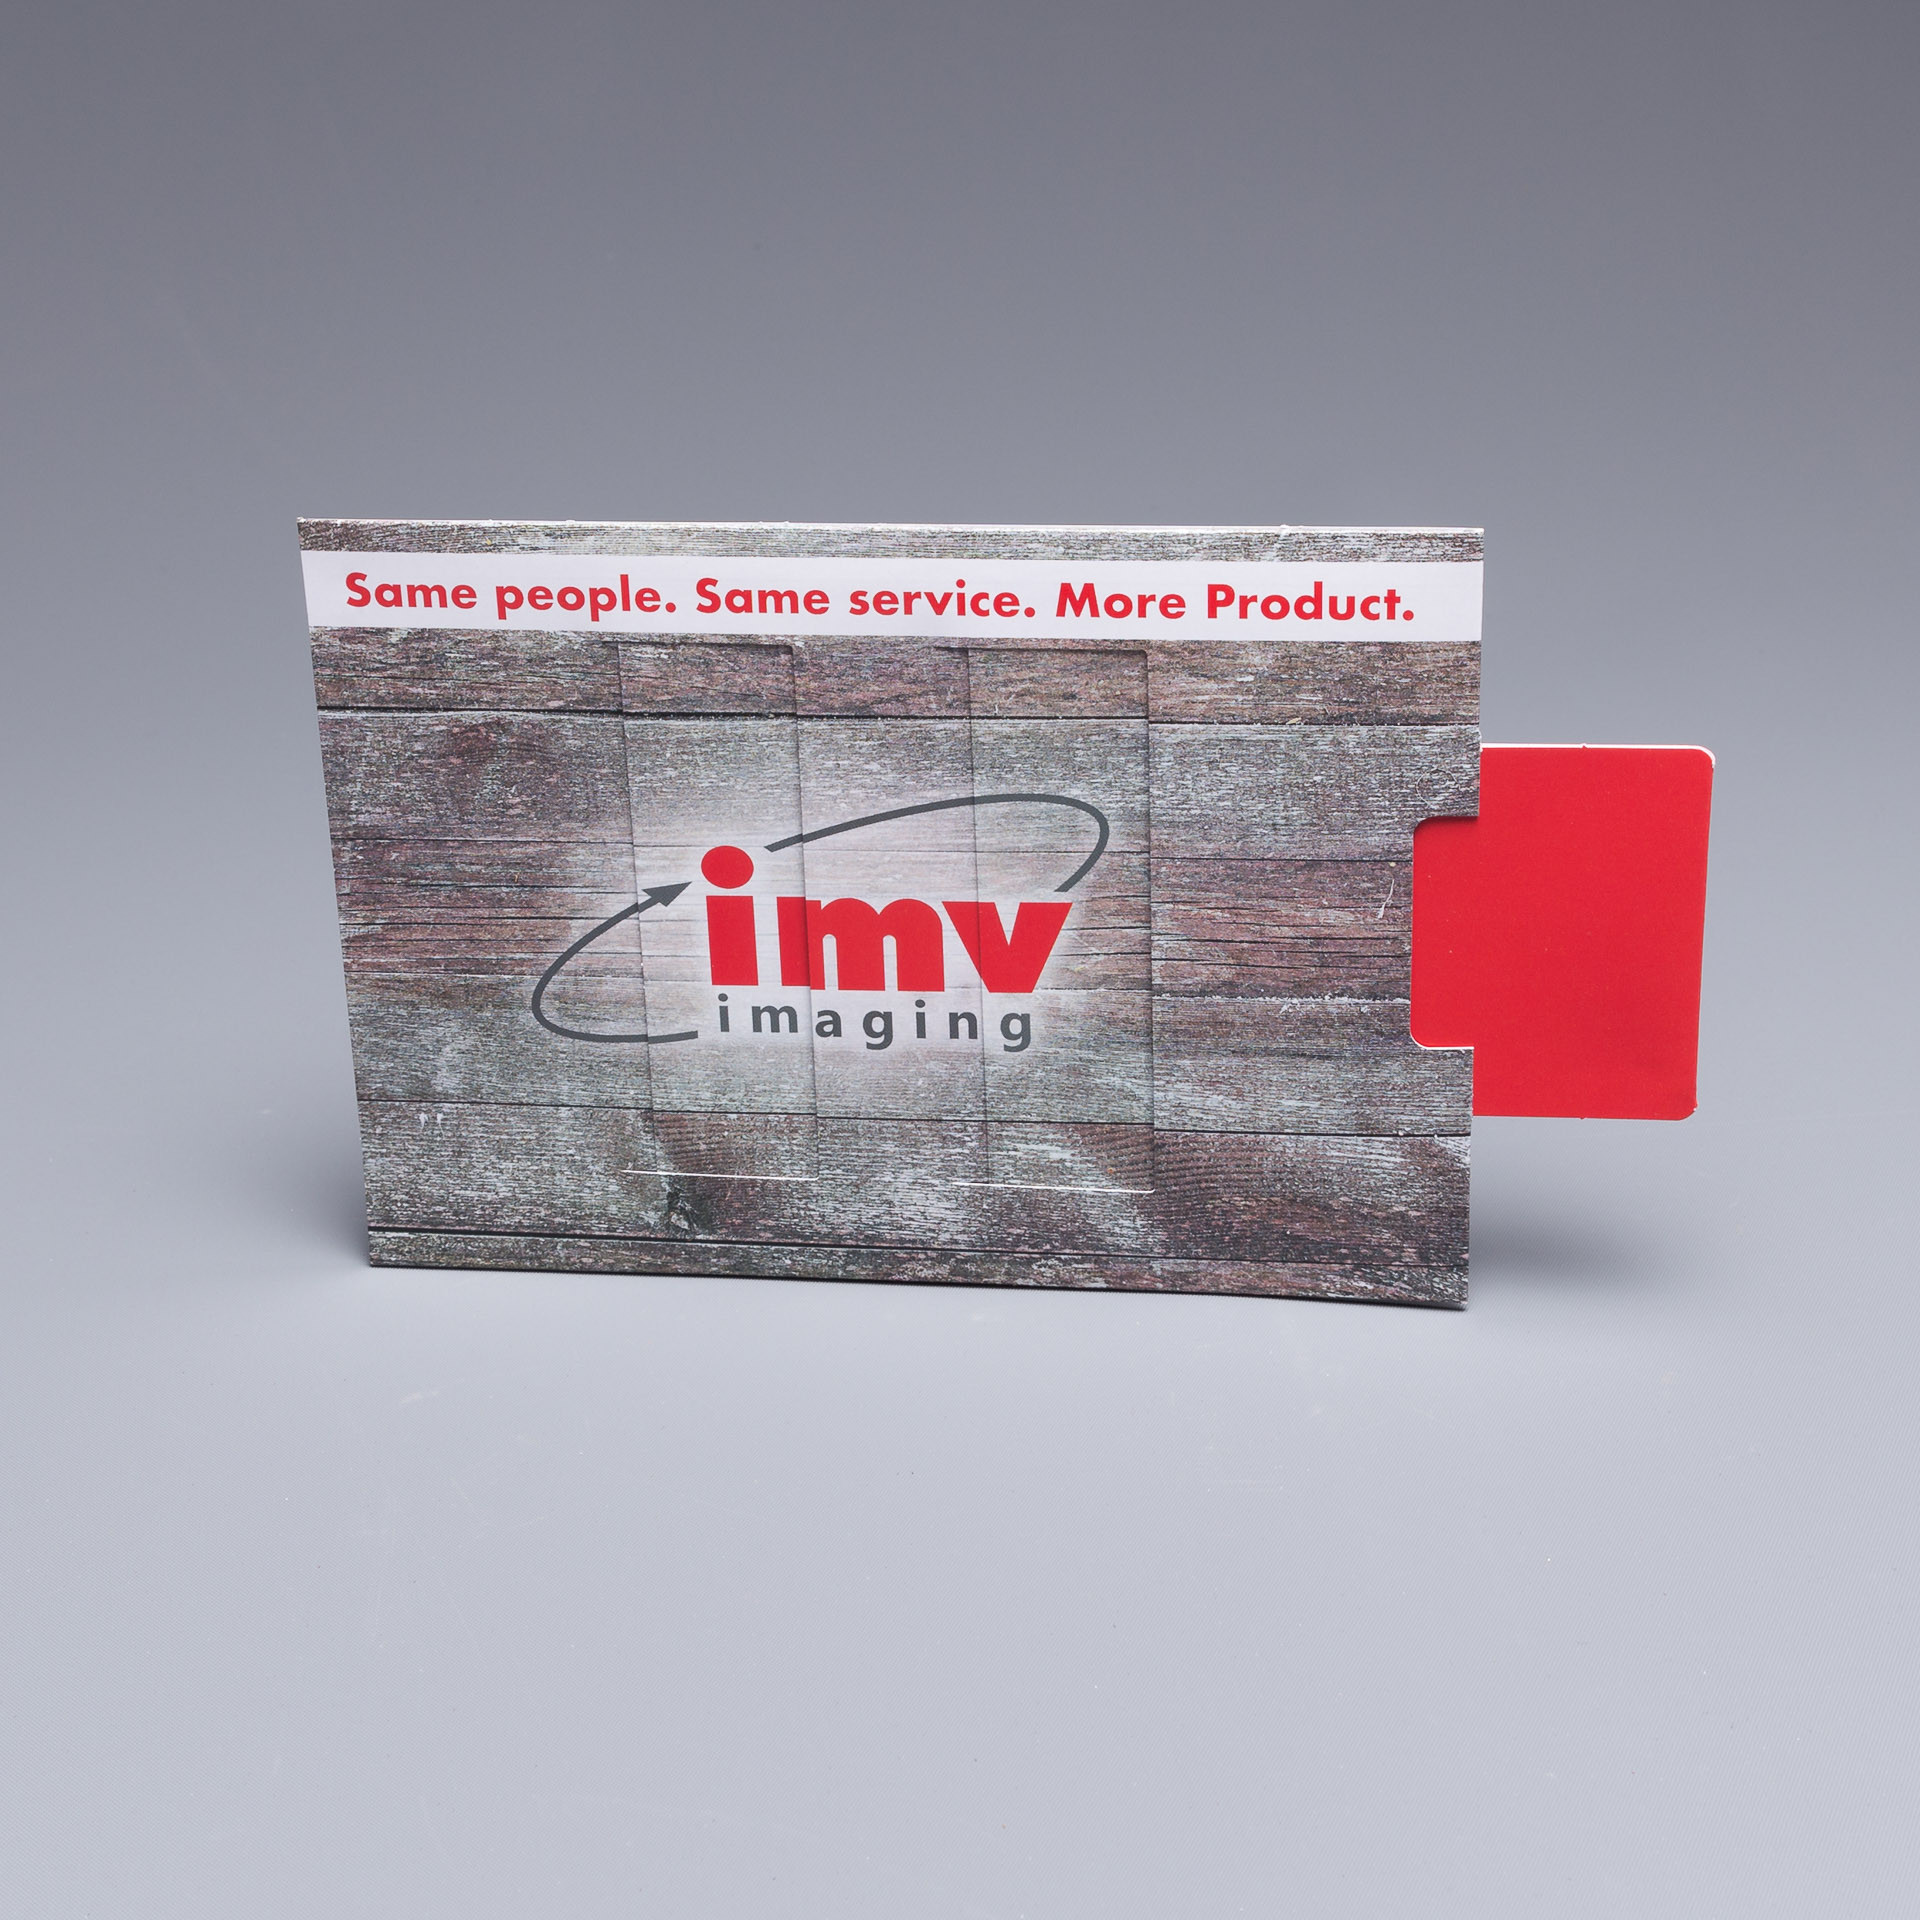 IMV Imaging Transforms their Brand with the Magic Changing Picture